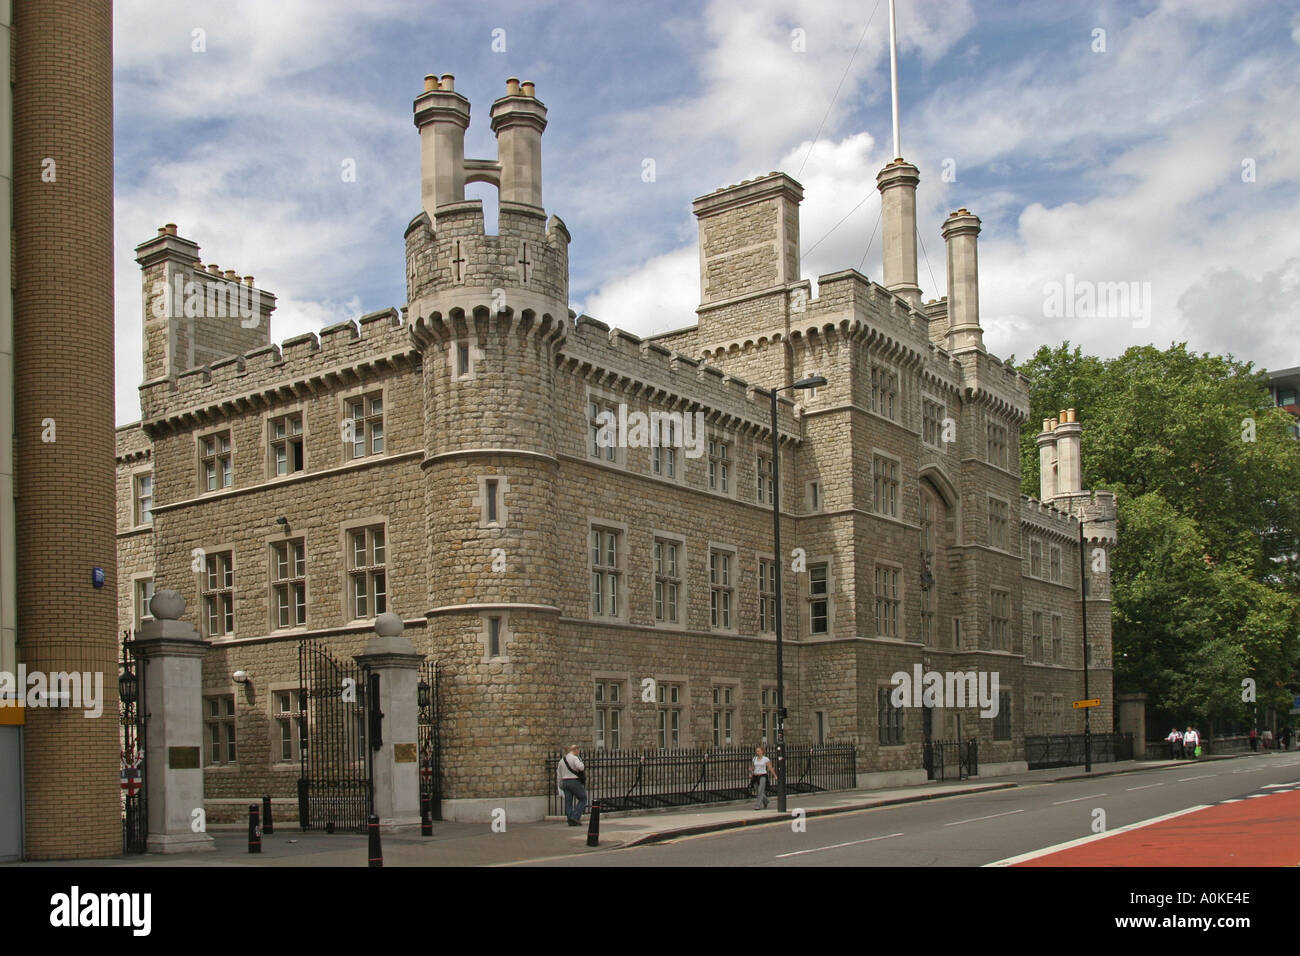 HAC Finsbury Barracks home of The Honourable Artillery Company in City of London GB UK - Stock Image